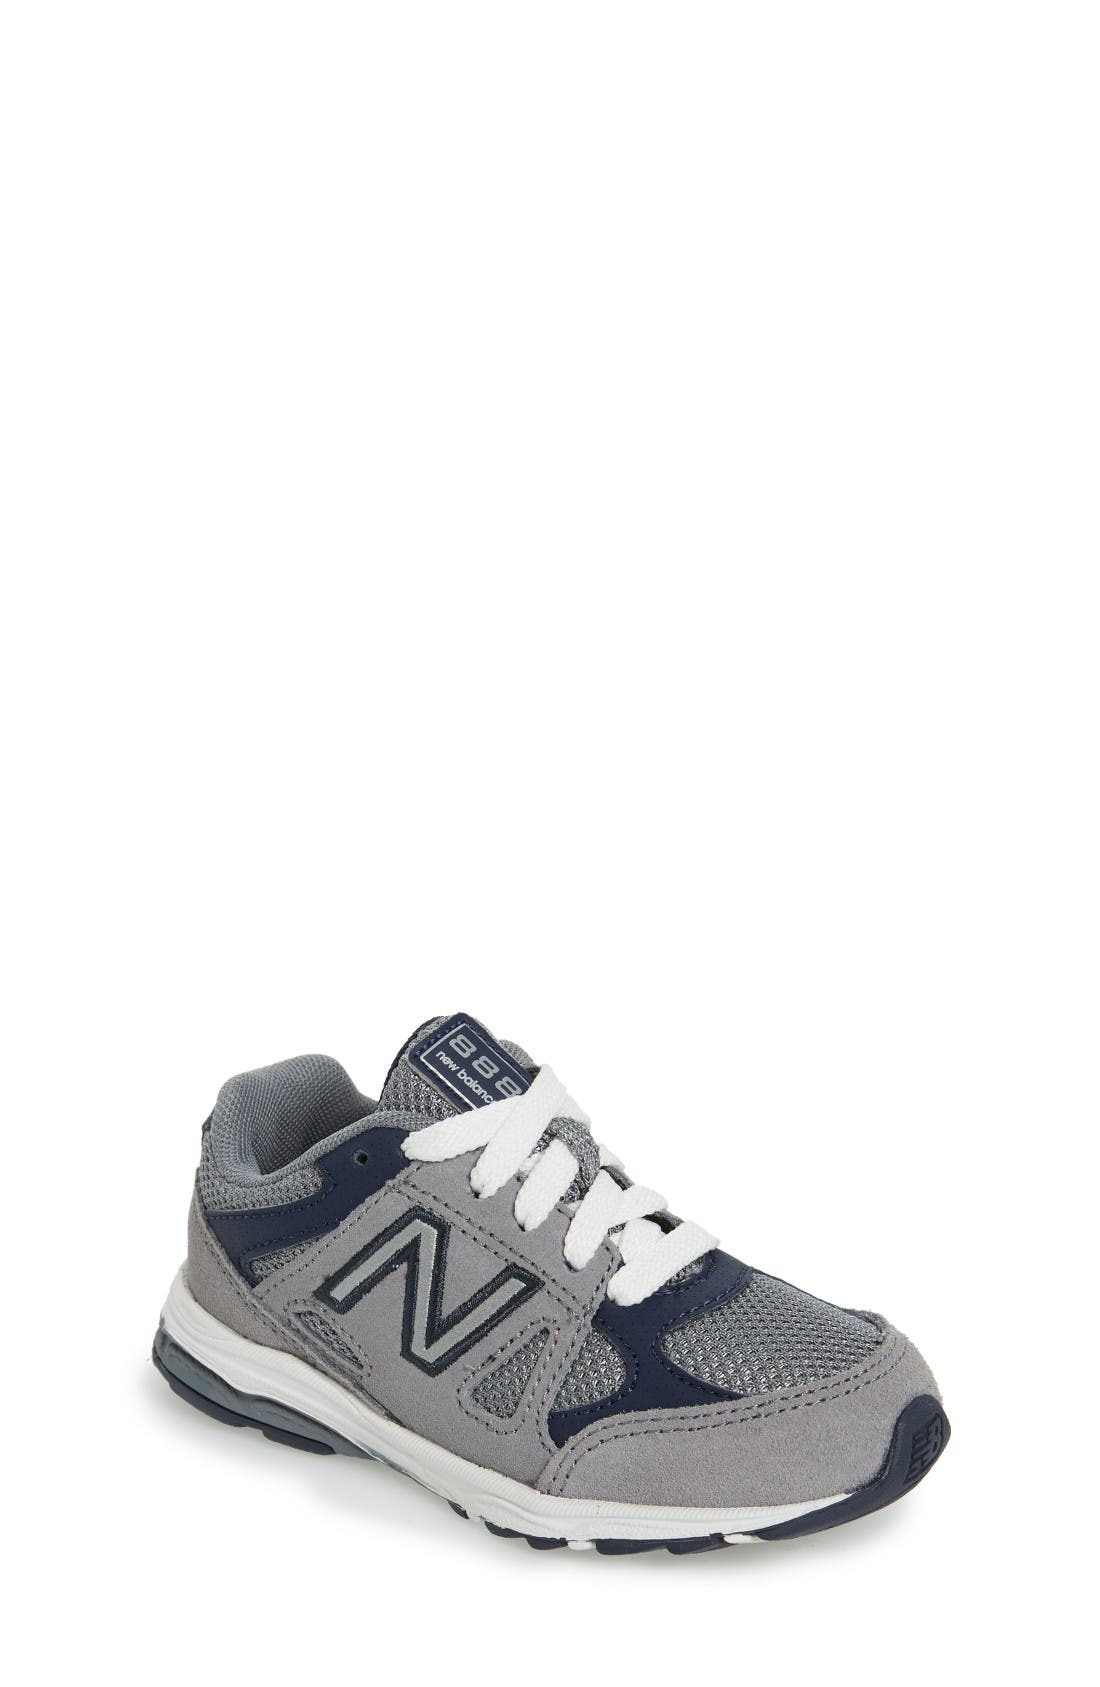 new balance toddler boy sneakers